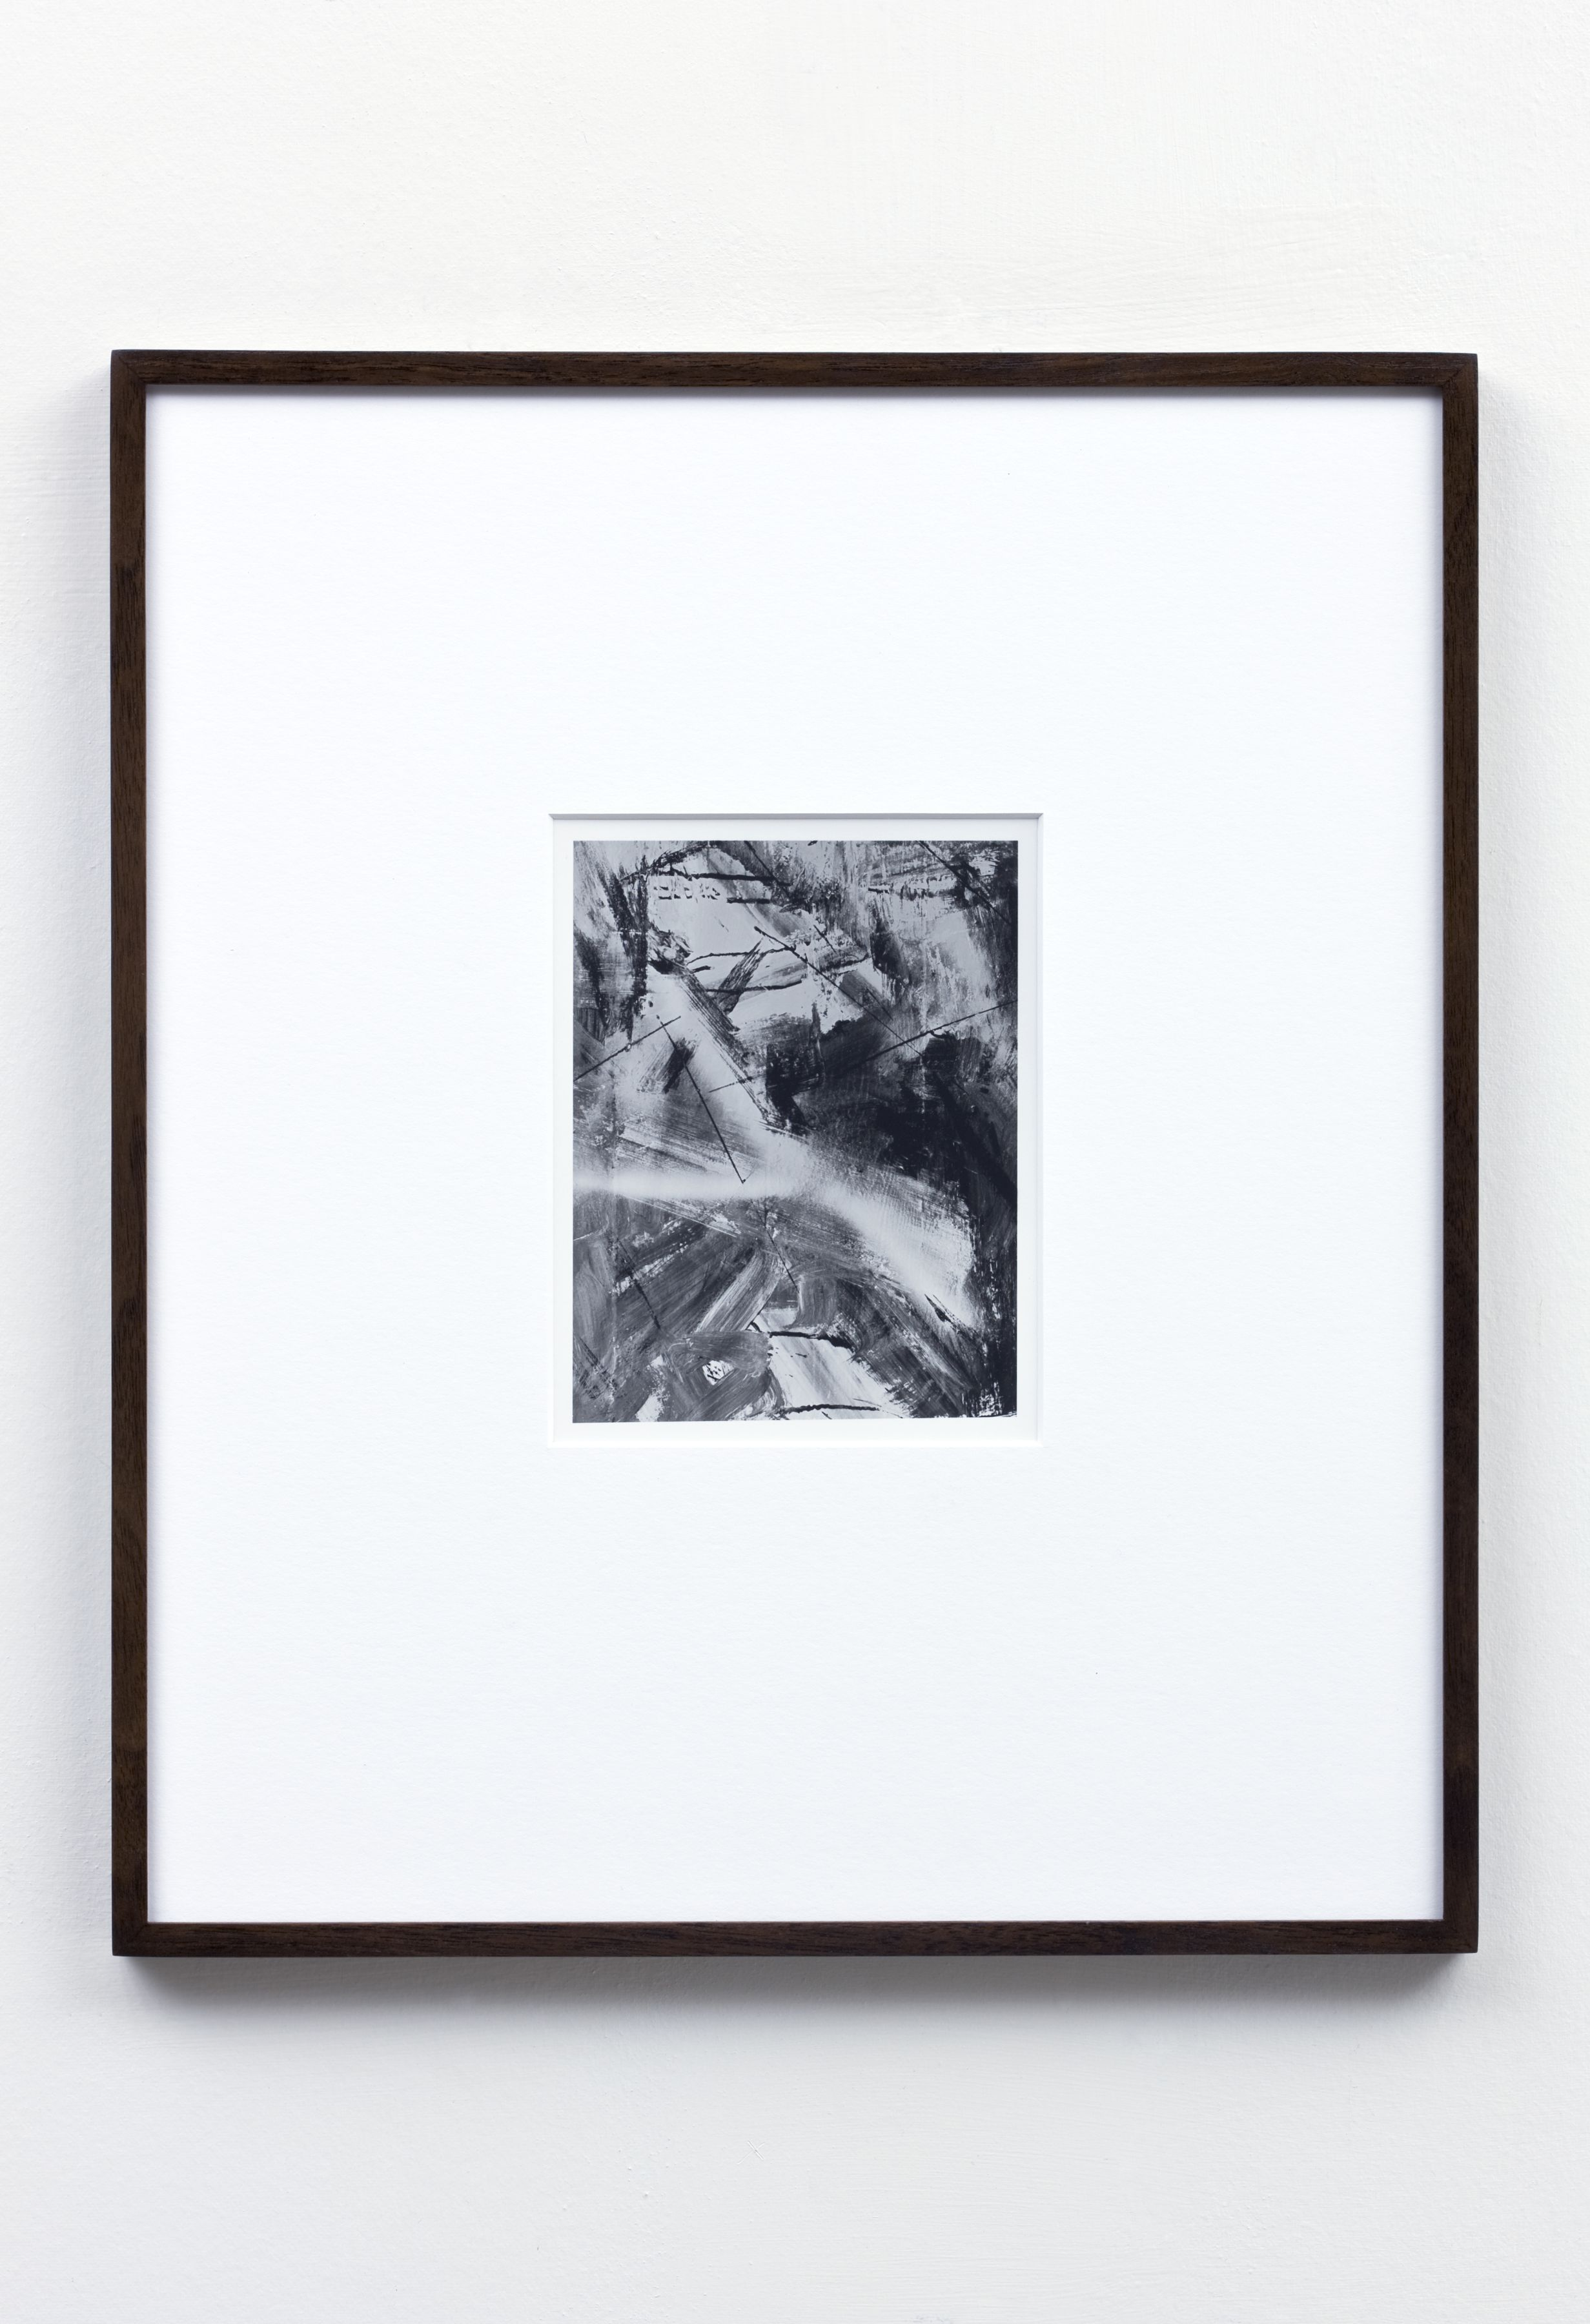 black and white abstract photograph by anthony pearson in a new york city exhibition